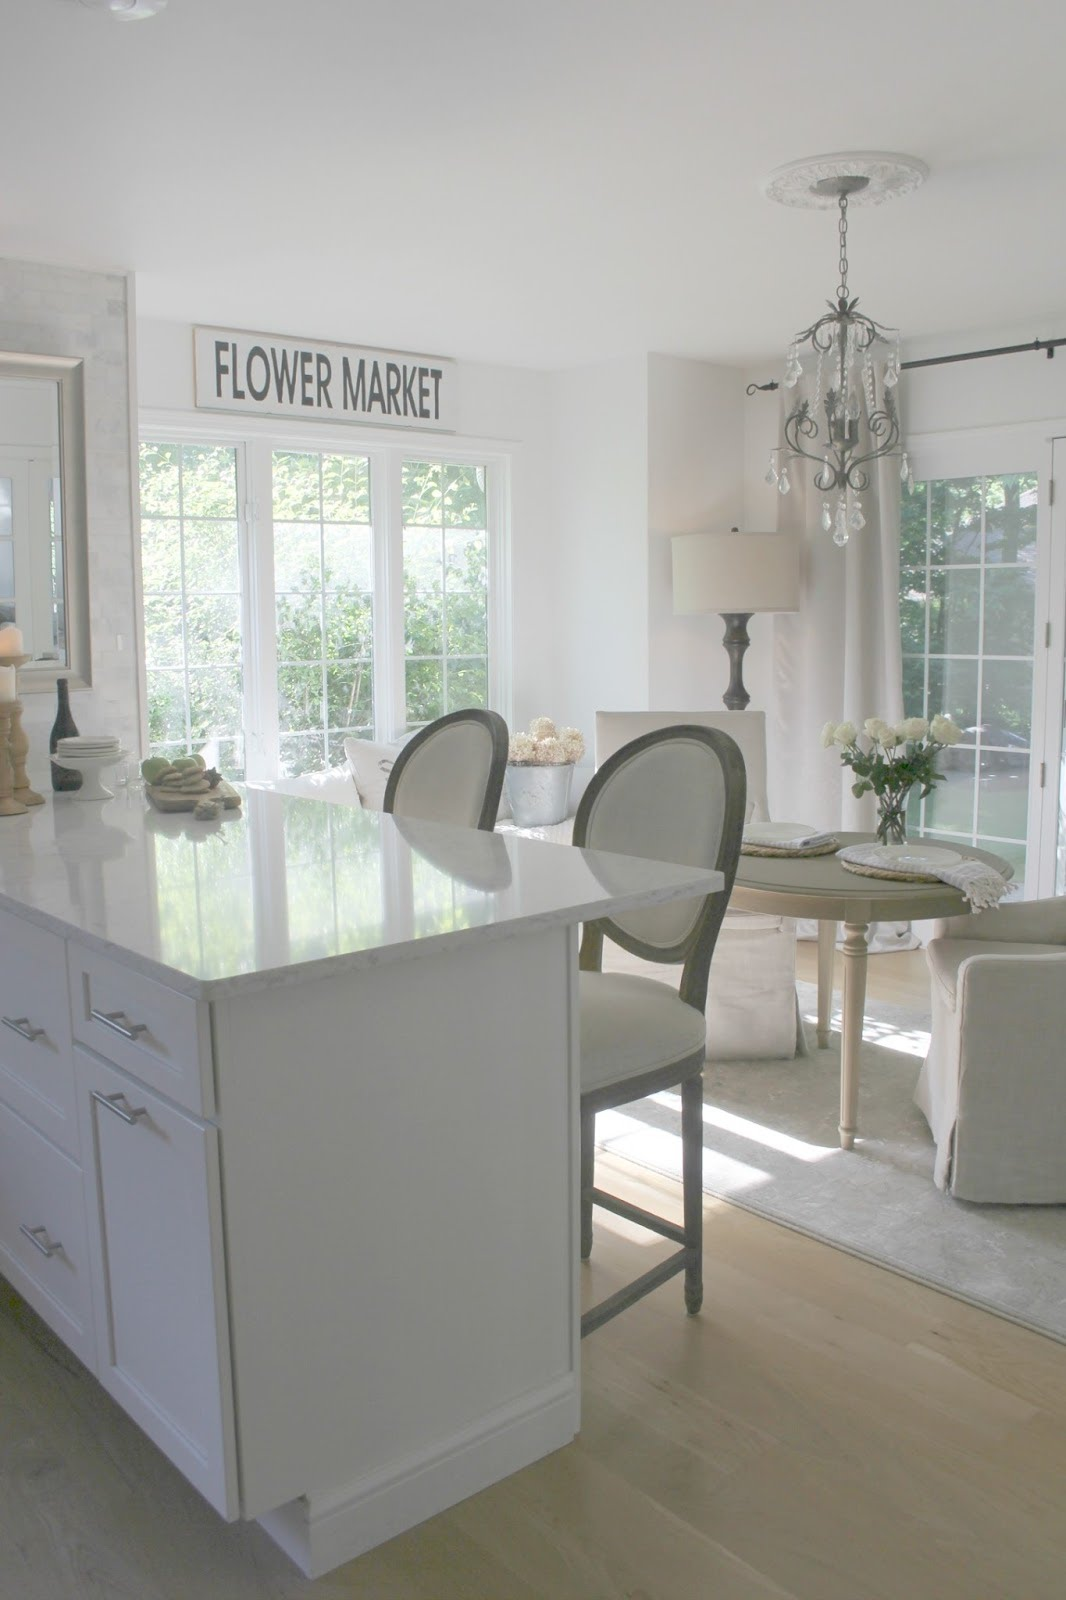 My serene white French country kitchen with white oak flooring, Minuet quartz Viatera countertop, and Belgian linen upholstered bar stools.  Come explore Serene Decor Slow Living as well as Small Thoughtful Changes at Home.